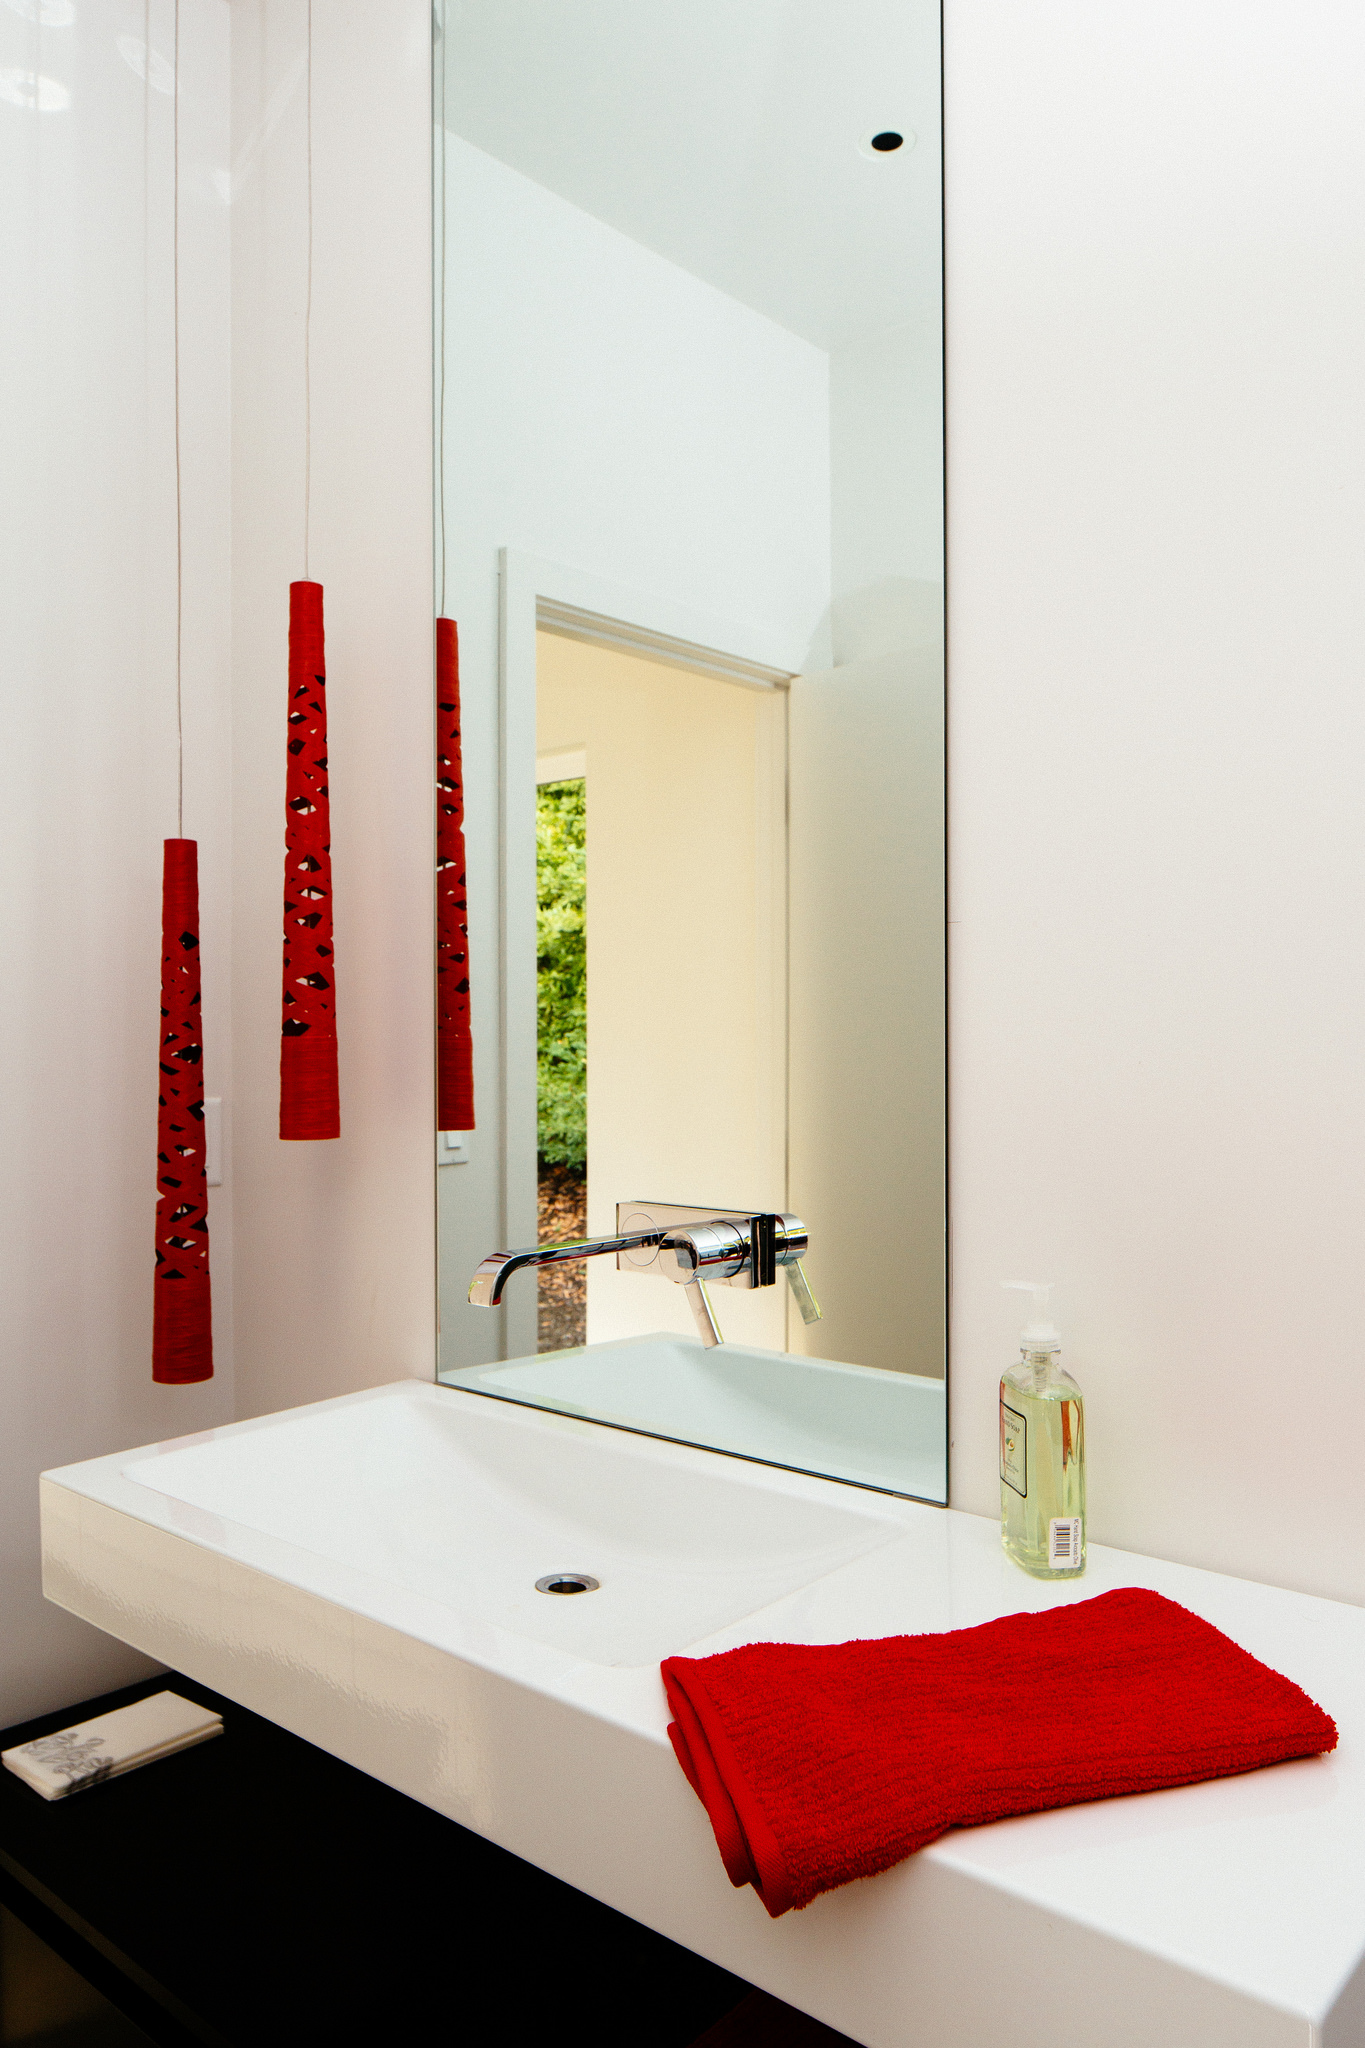 A white bathroom countertop with faucet mounted over the mirror and two small red pendants on a side